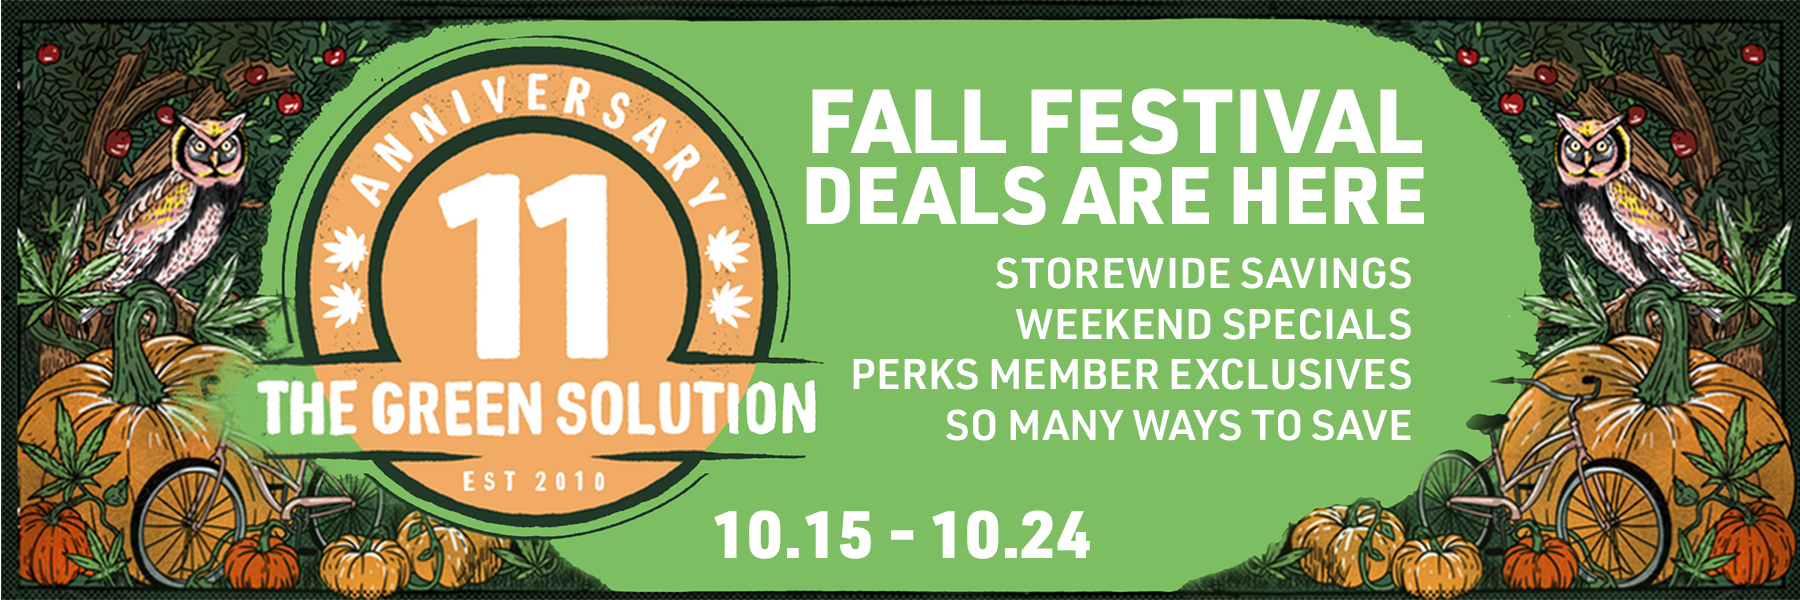 fall festival and anniversary celebration featuring food trucks, brand popups, live music at select locations, storewide savings and more fall fun 10.15 thru 10.24